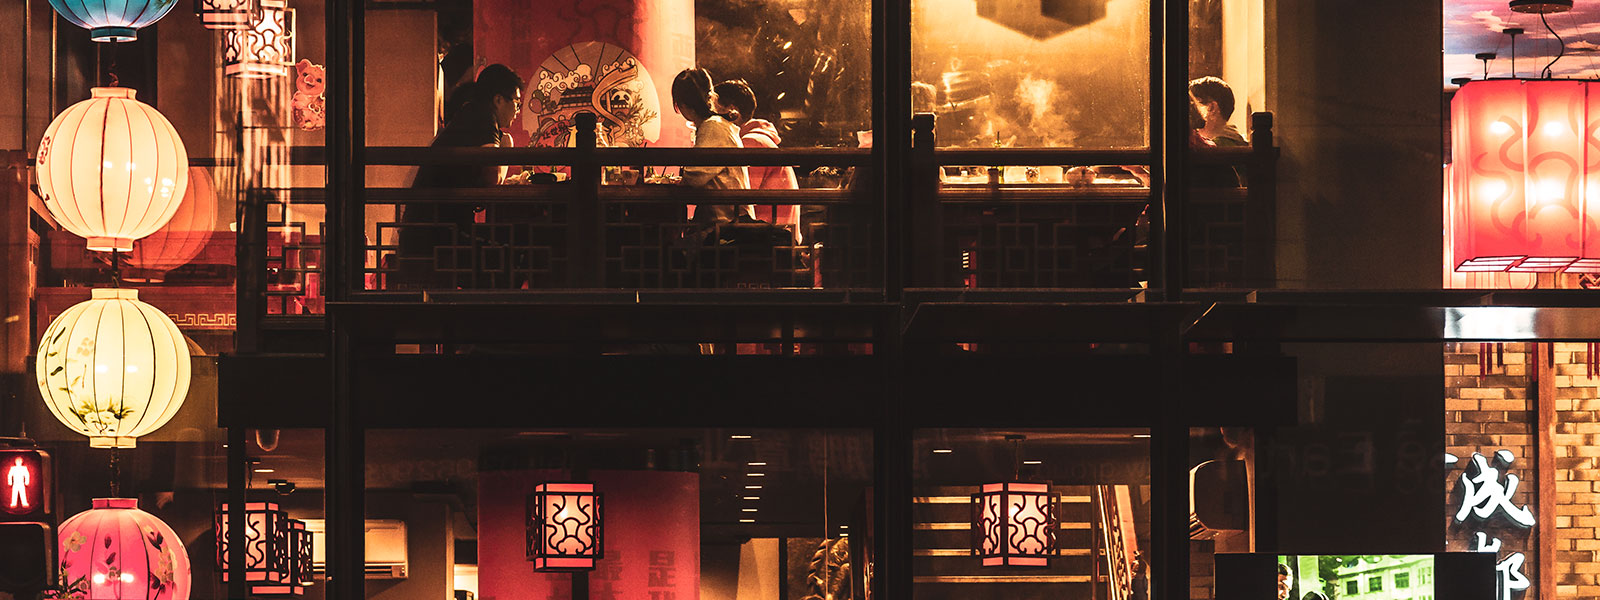 Dimly-lit restaurant in Hong Kong where friends are dining